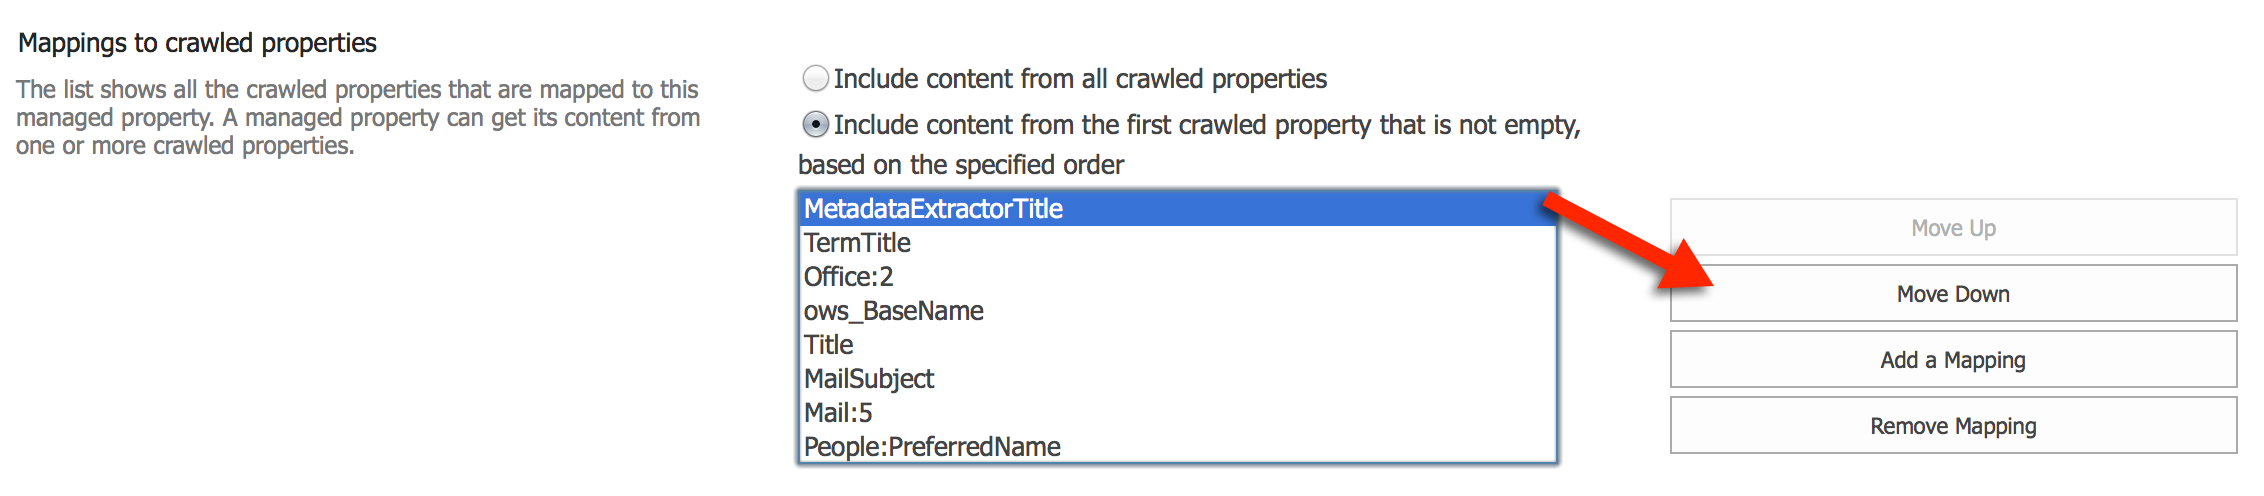 Understand SharePoint Crawled and Managed properties for search